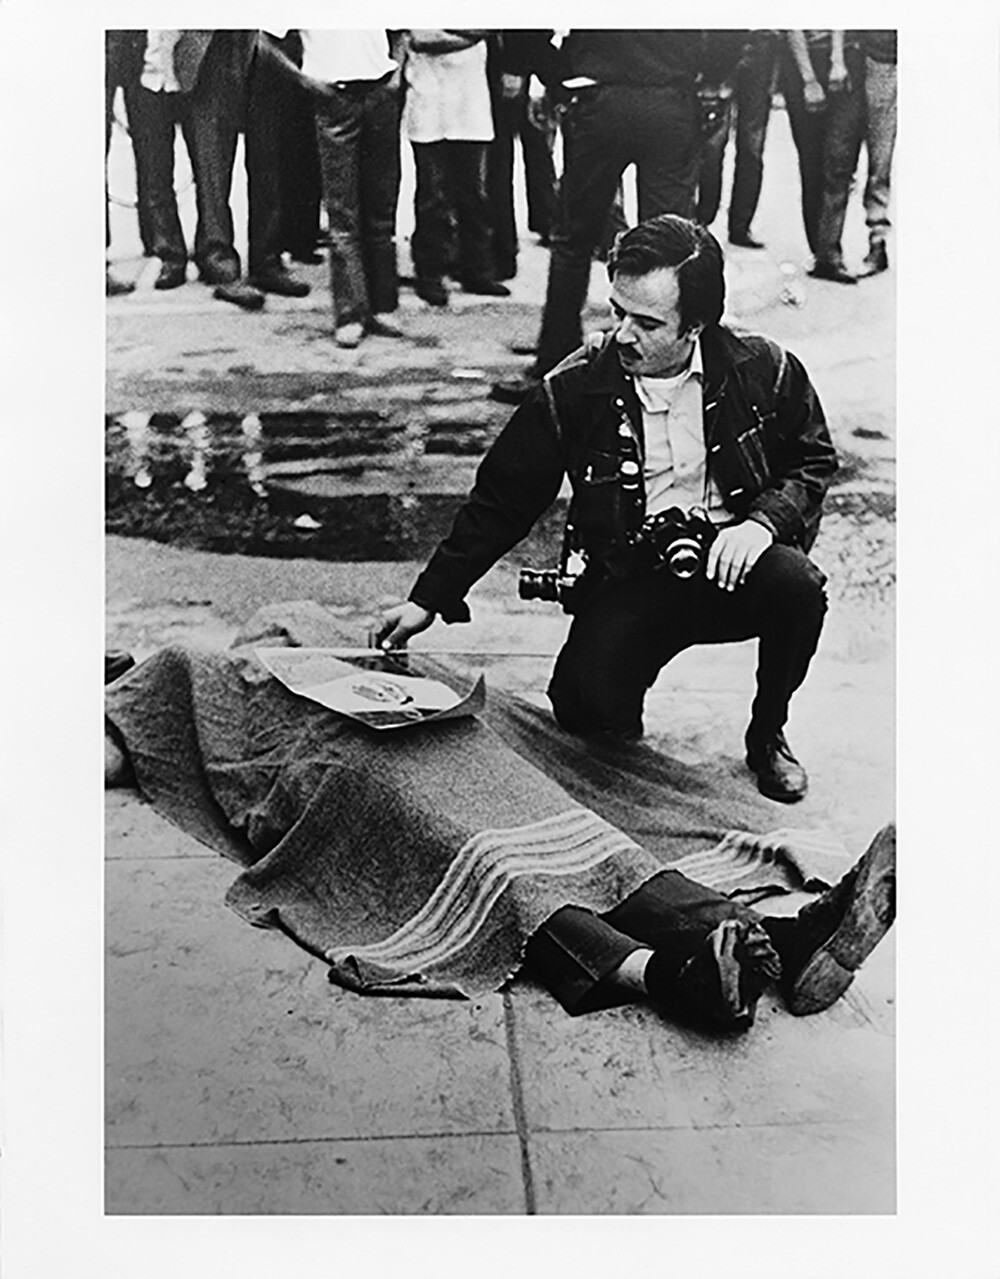 Raul Ruiz with Gustav Montag, a bystander who was struck by ricochet ammunition during a protest on Jan 31 1971. | Courtesy of Luis C. Garza.